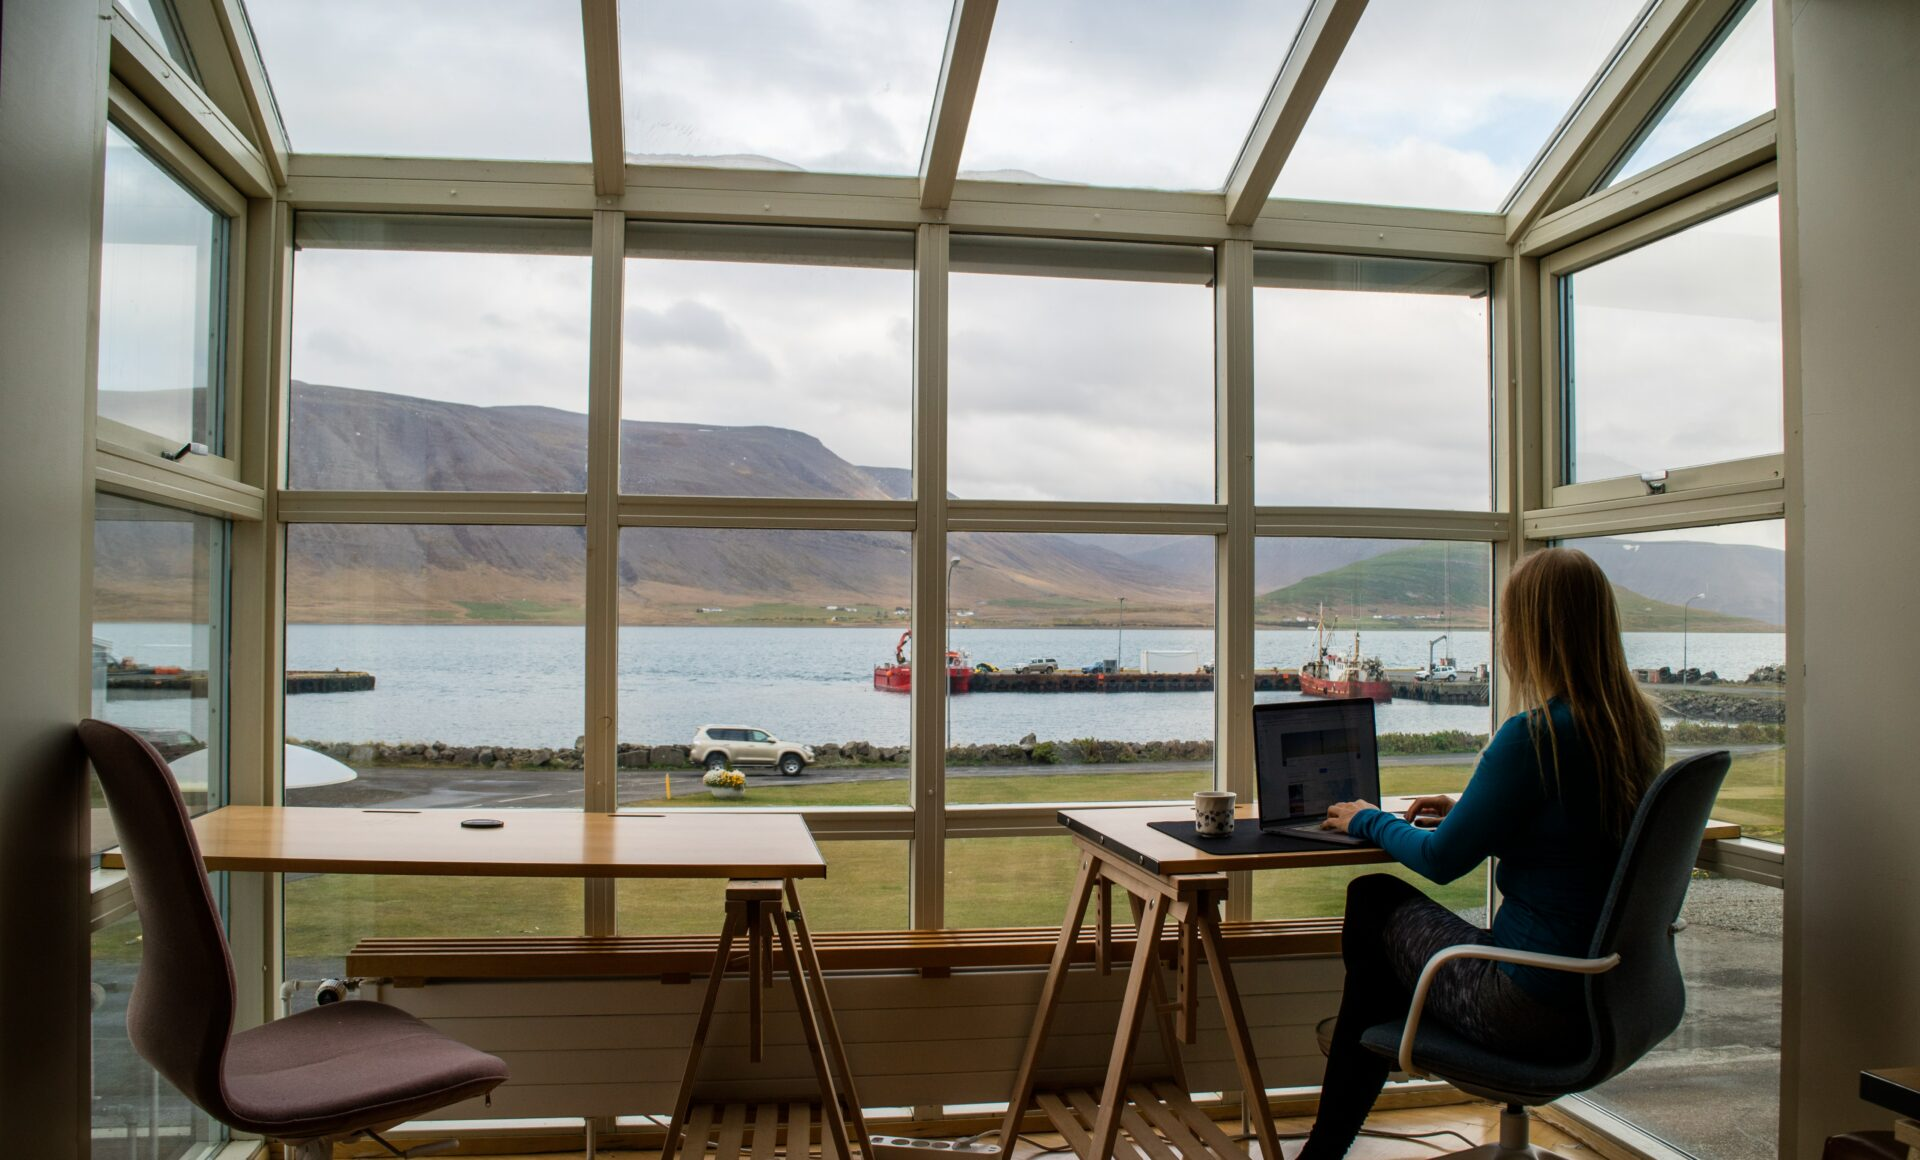 A person working remotely with a view of fjords in Iceland